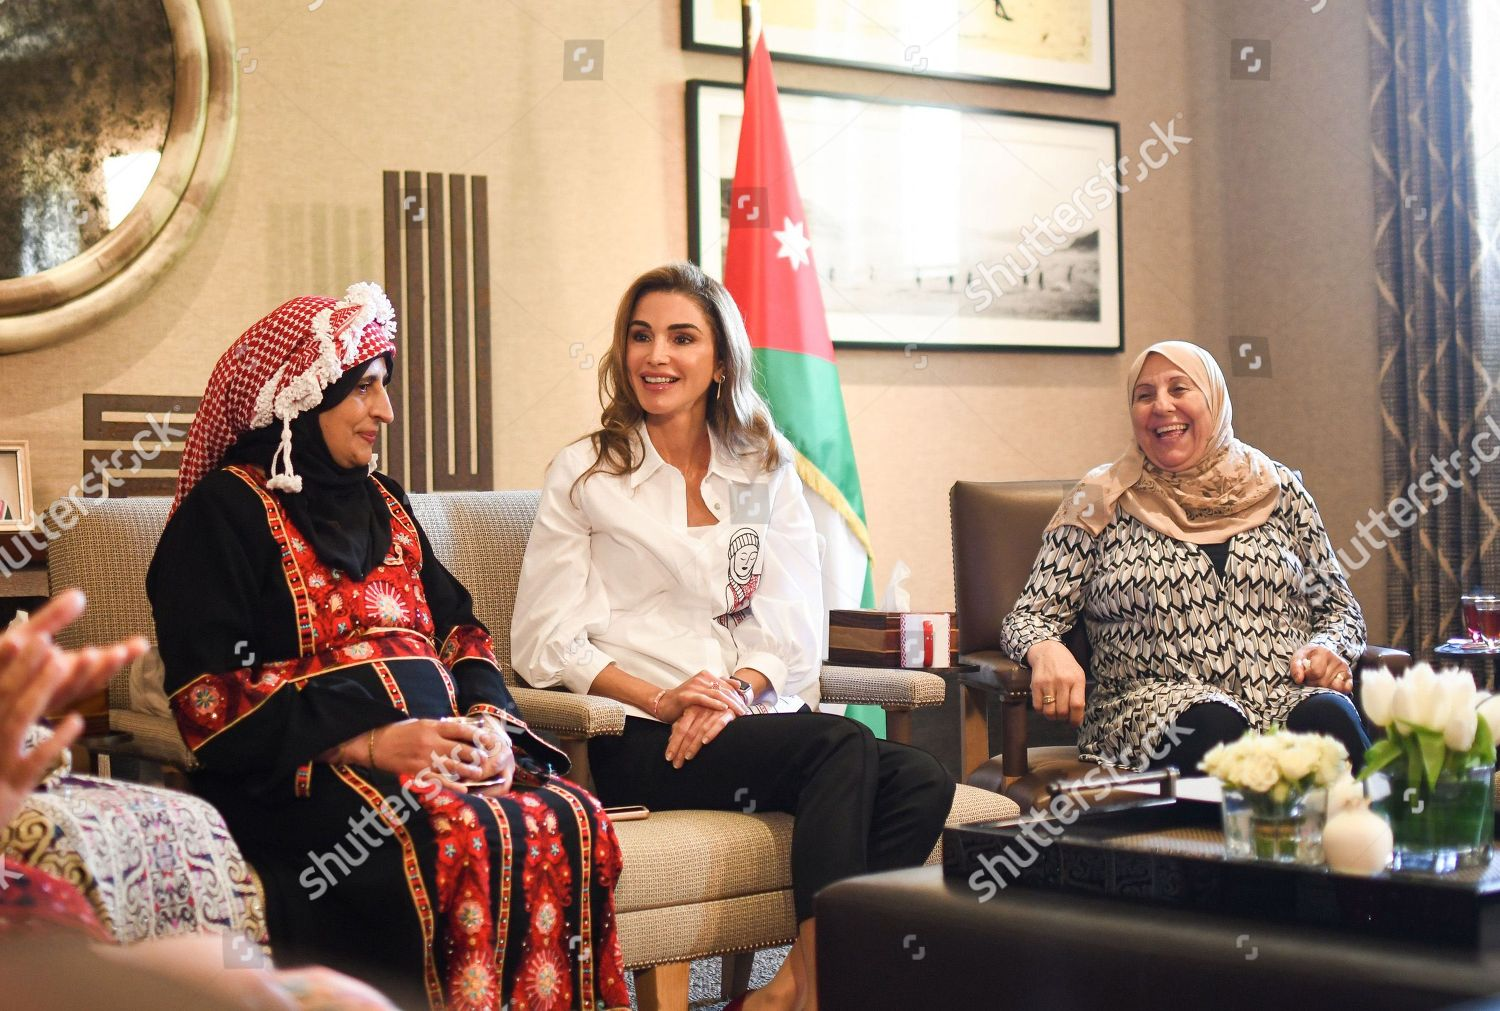 CASA REAL JORDANA - Página 11 Queen-rania-meets-with-female-artisanal-food-producers-amman-jordan-shutterstock-editorial-9855869a